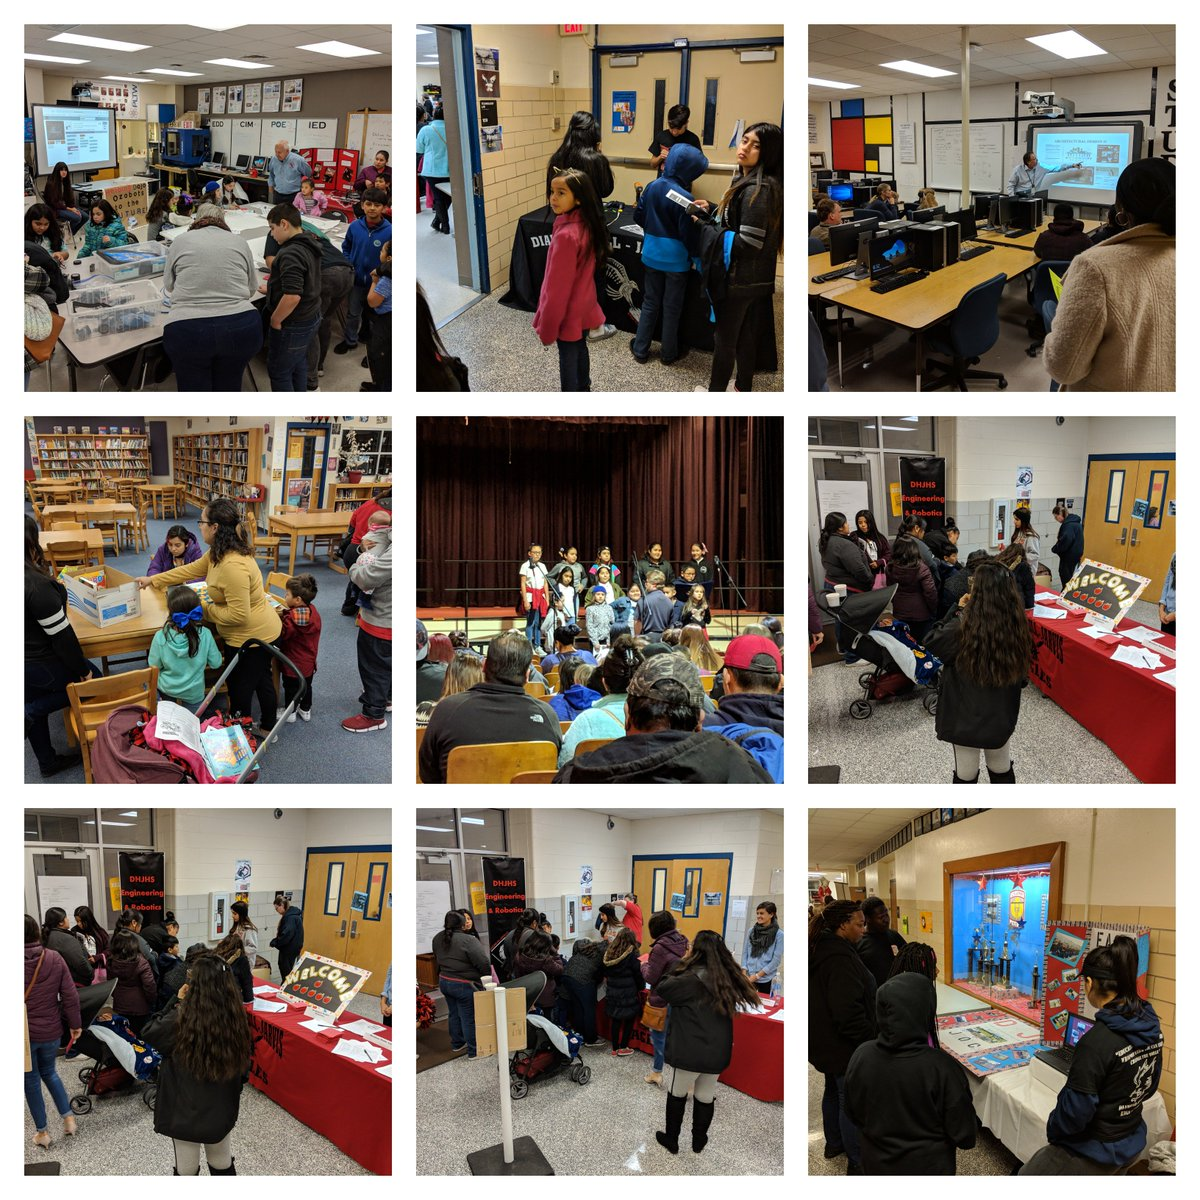 Thank you to everyone that attended our DHJ Pyramid Fair last night! #AllThingsDHJ #WeAreDiamondHill #EagleNation